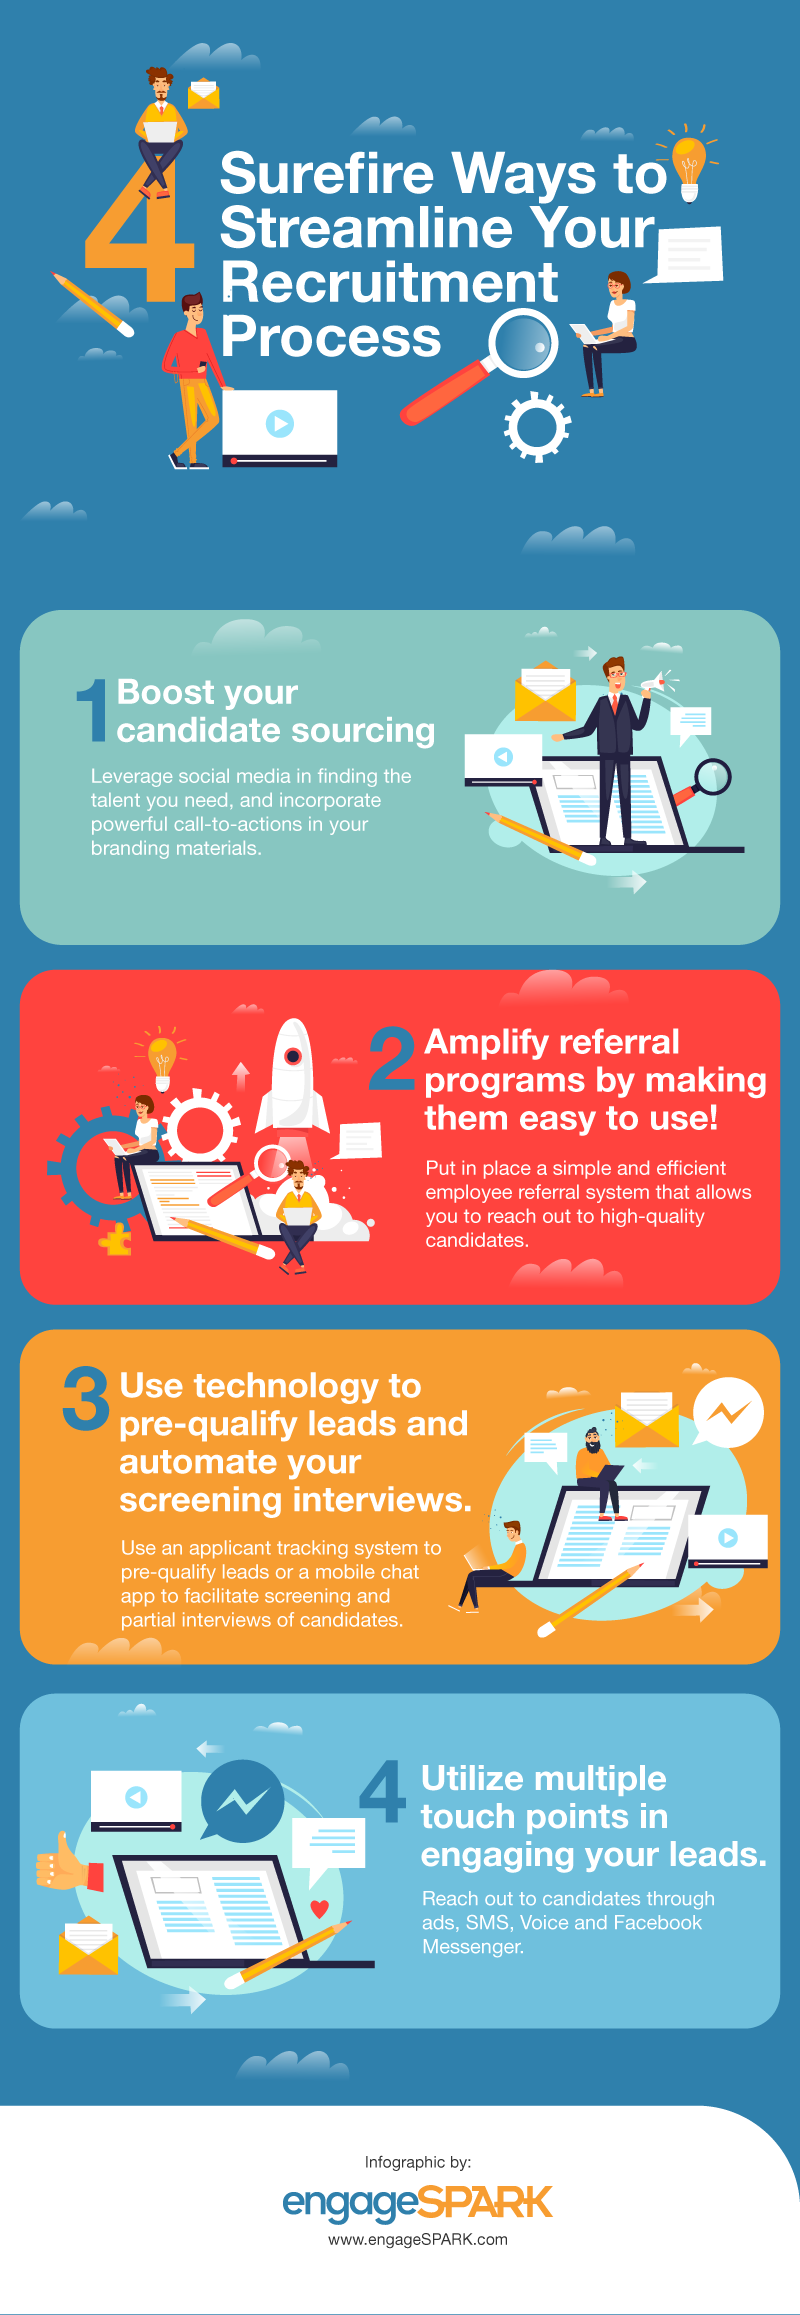 How to Streamline and Boost Your Recruitment Process: 4 Novel Strategies - Infographic